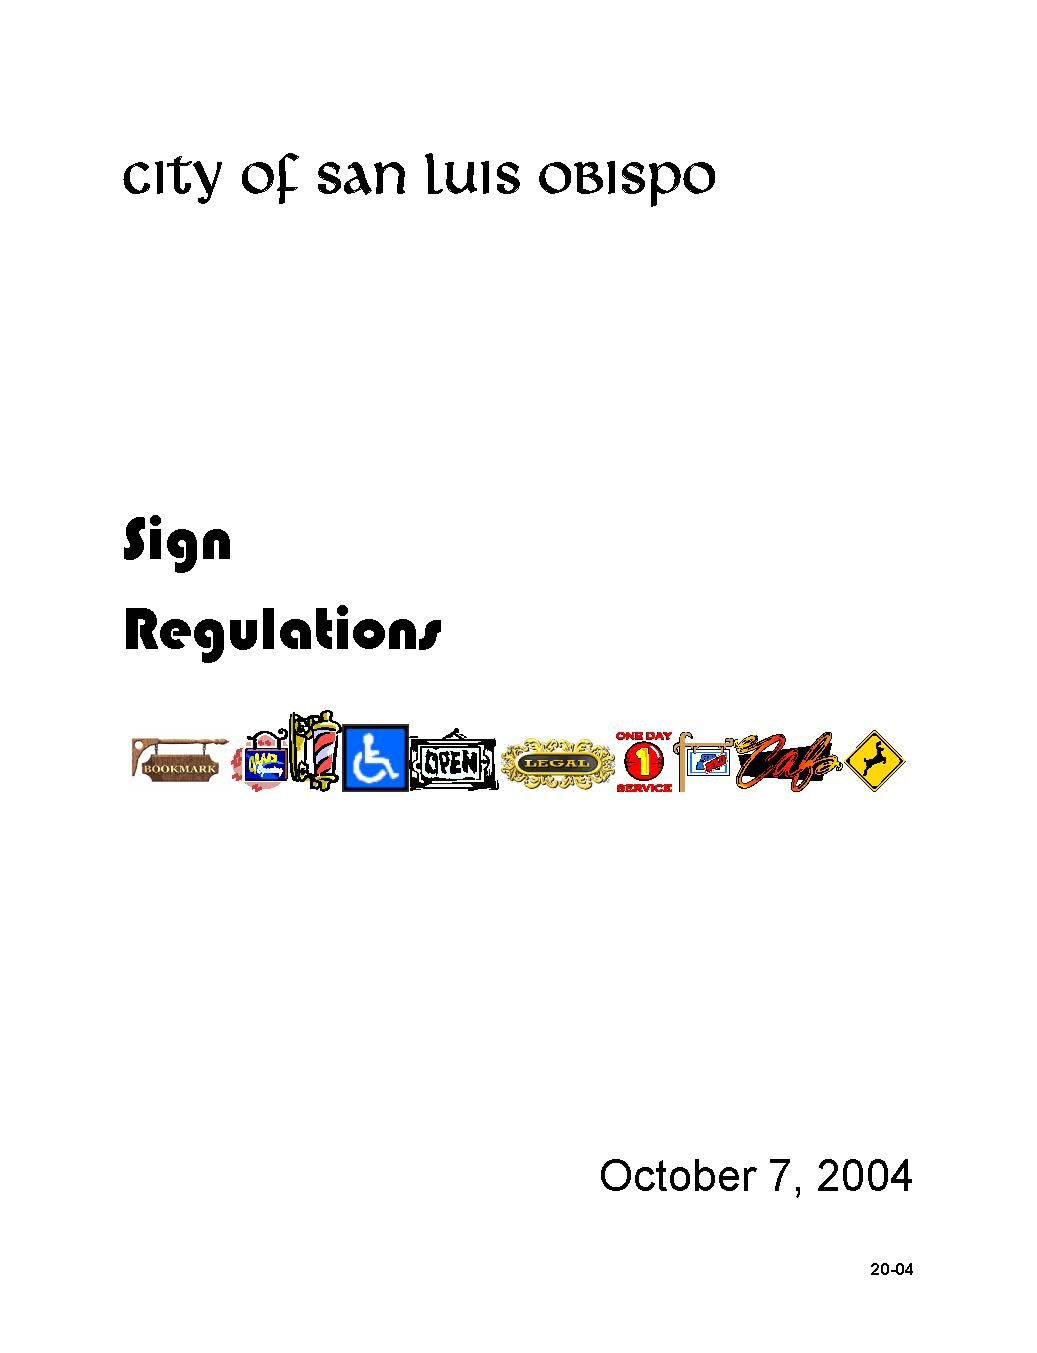 Pages from signregs.10.07.04